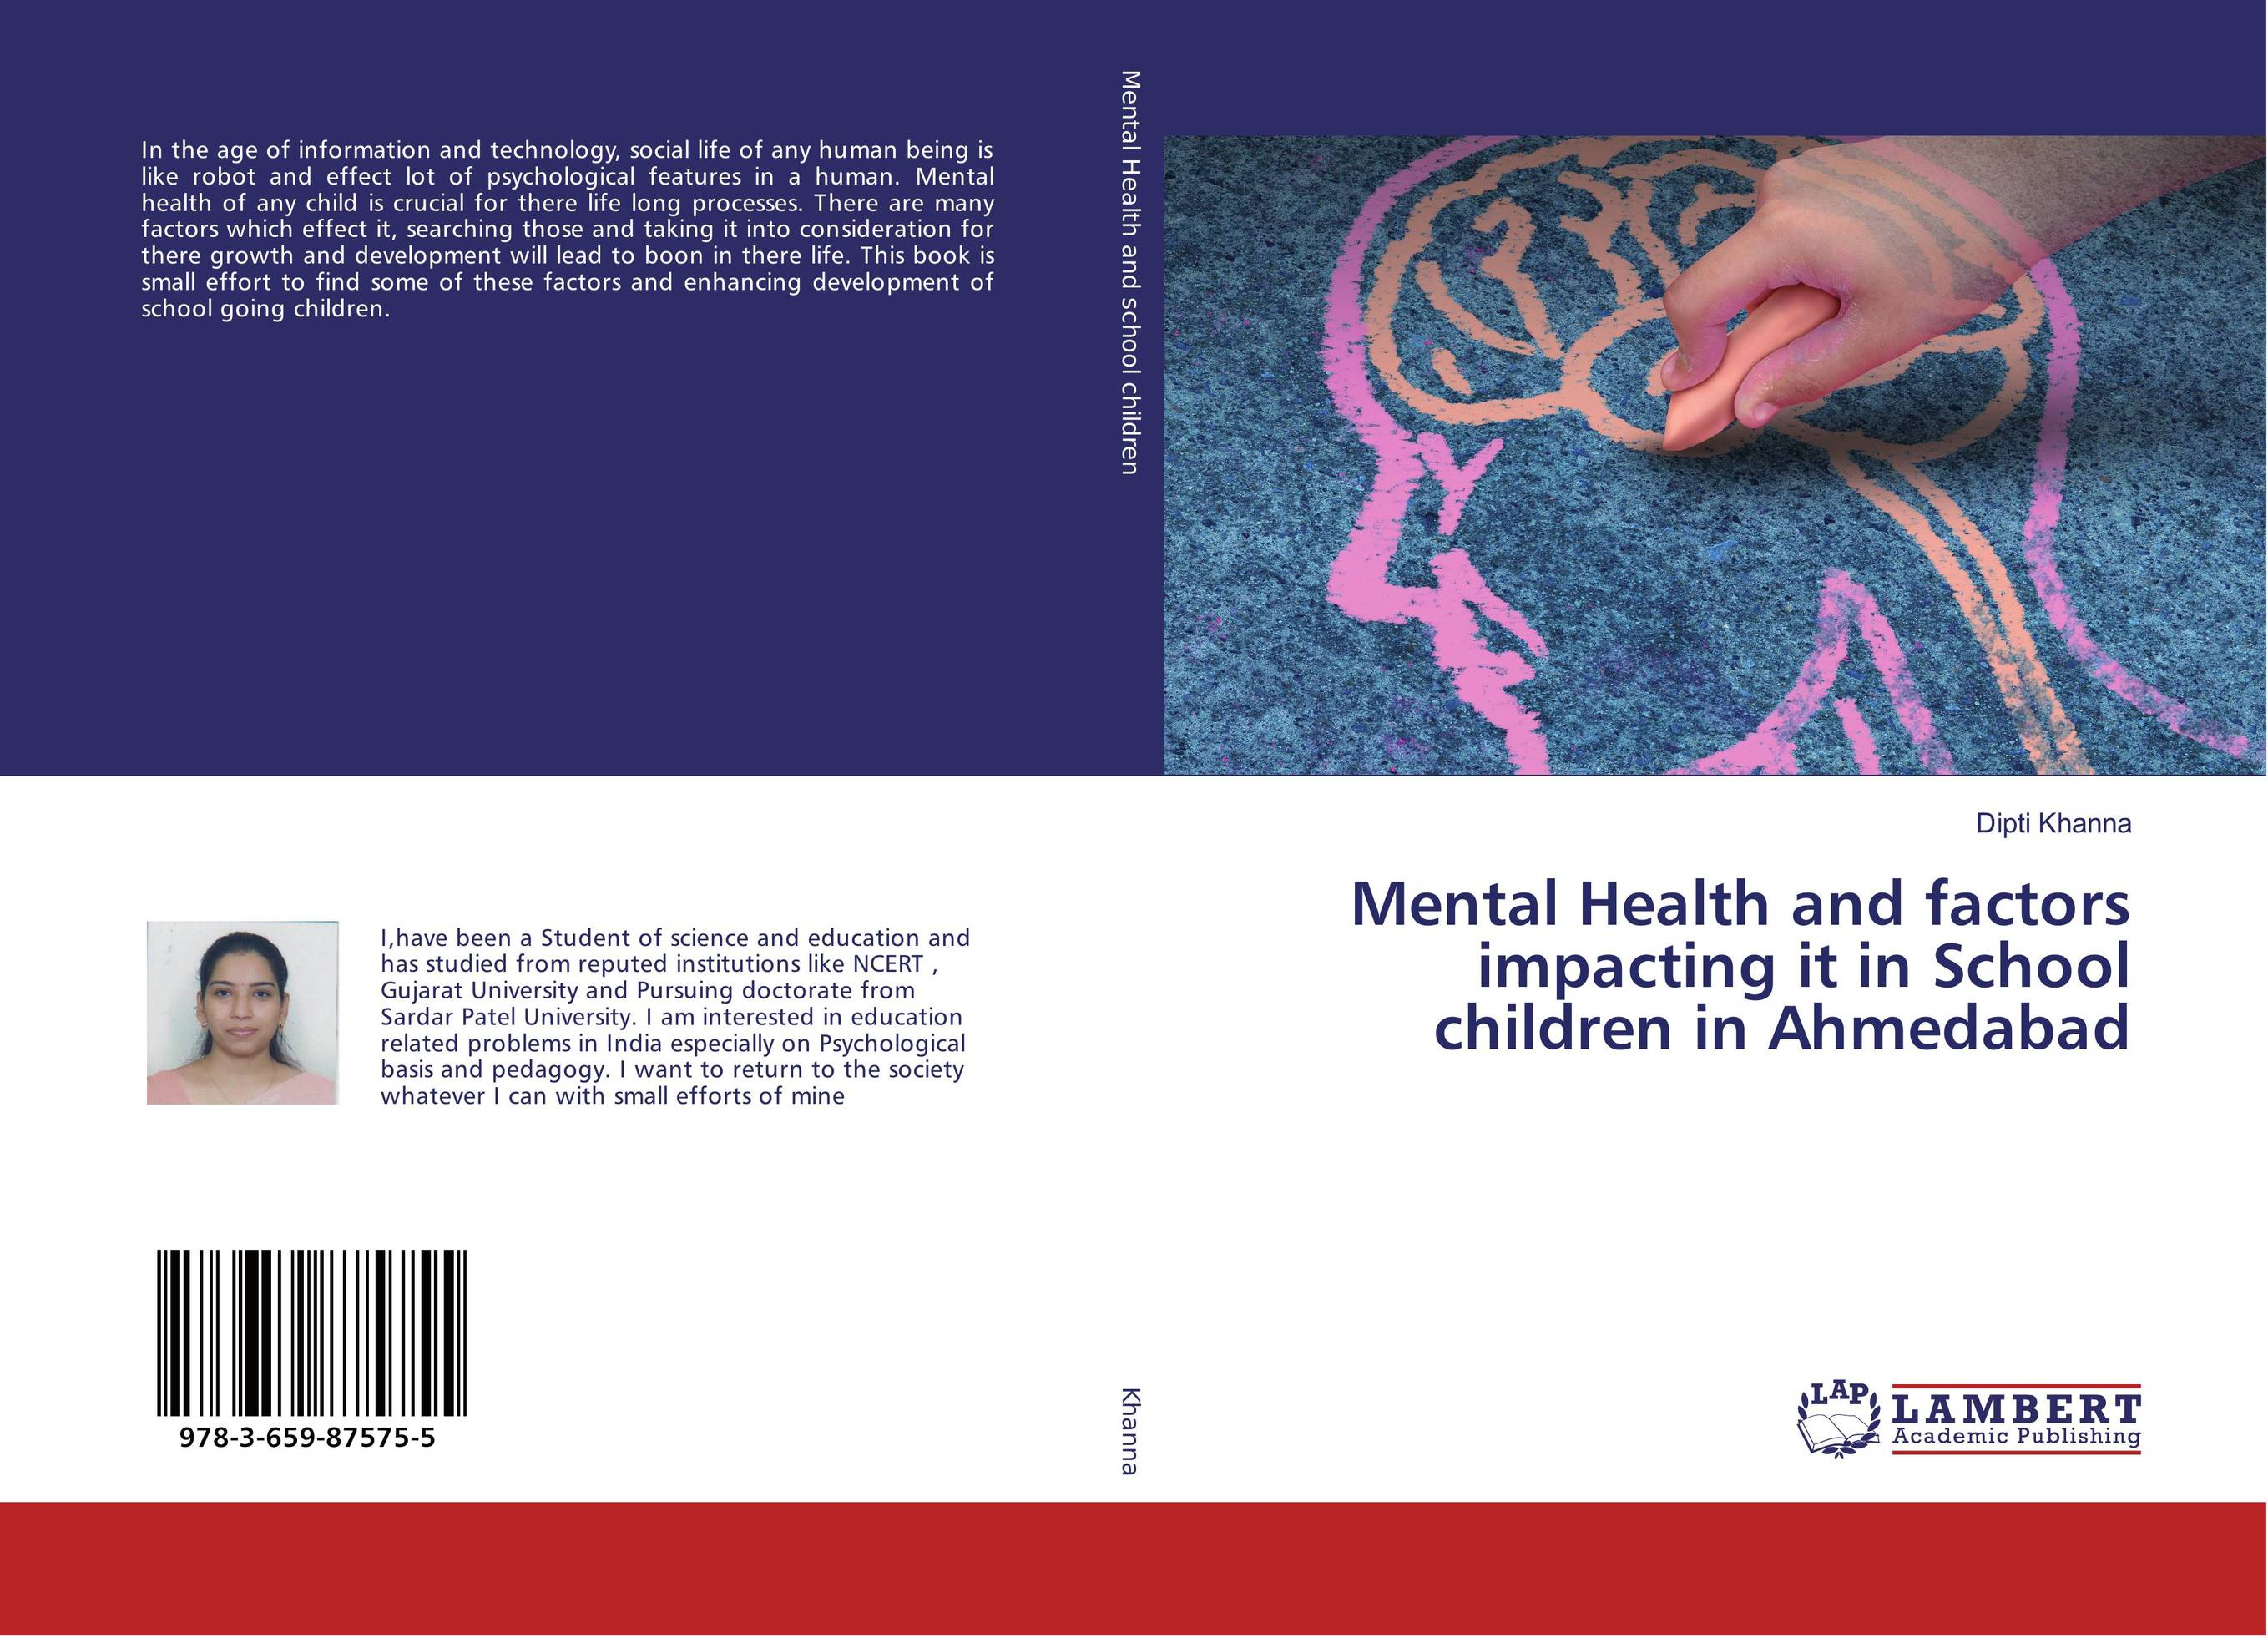 Mental Health and factors impacting it in School children in Ahmedabad epilepsy in children psychological concerns